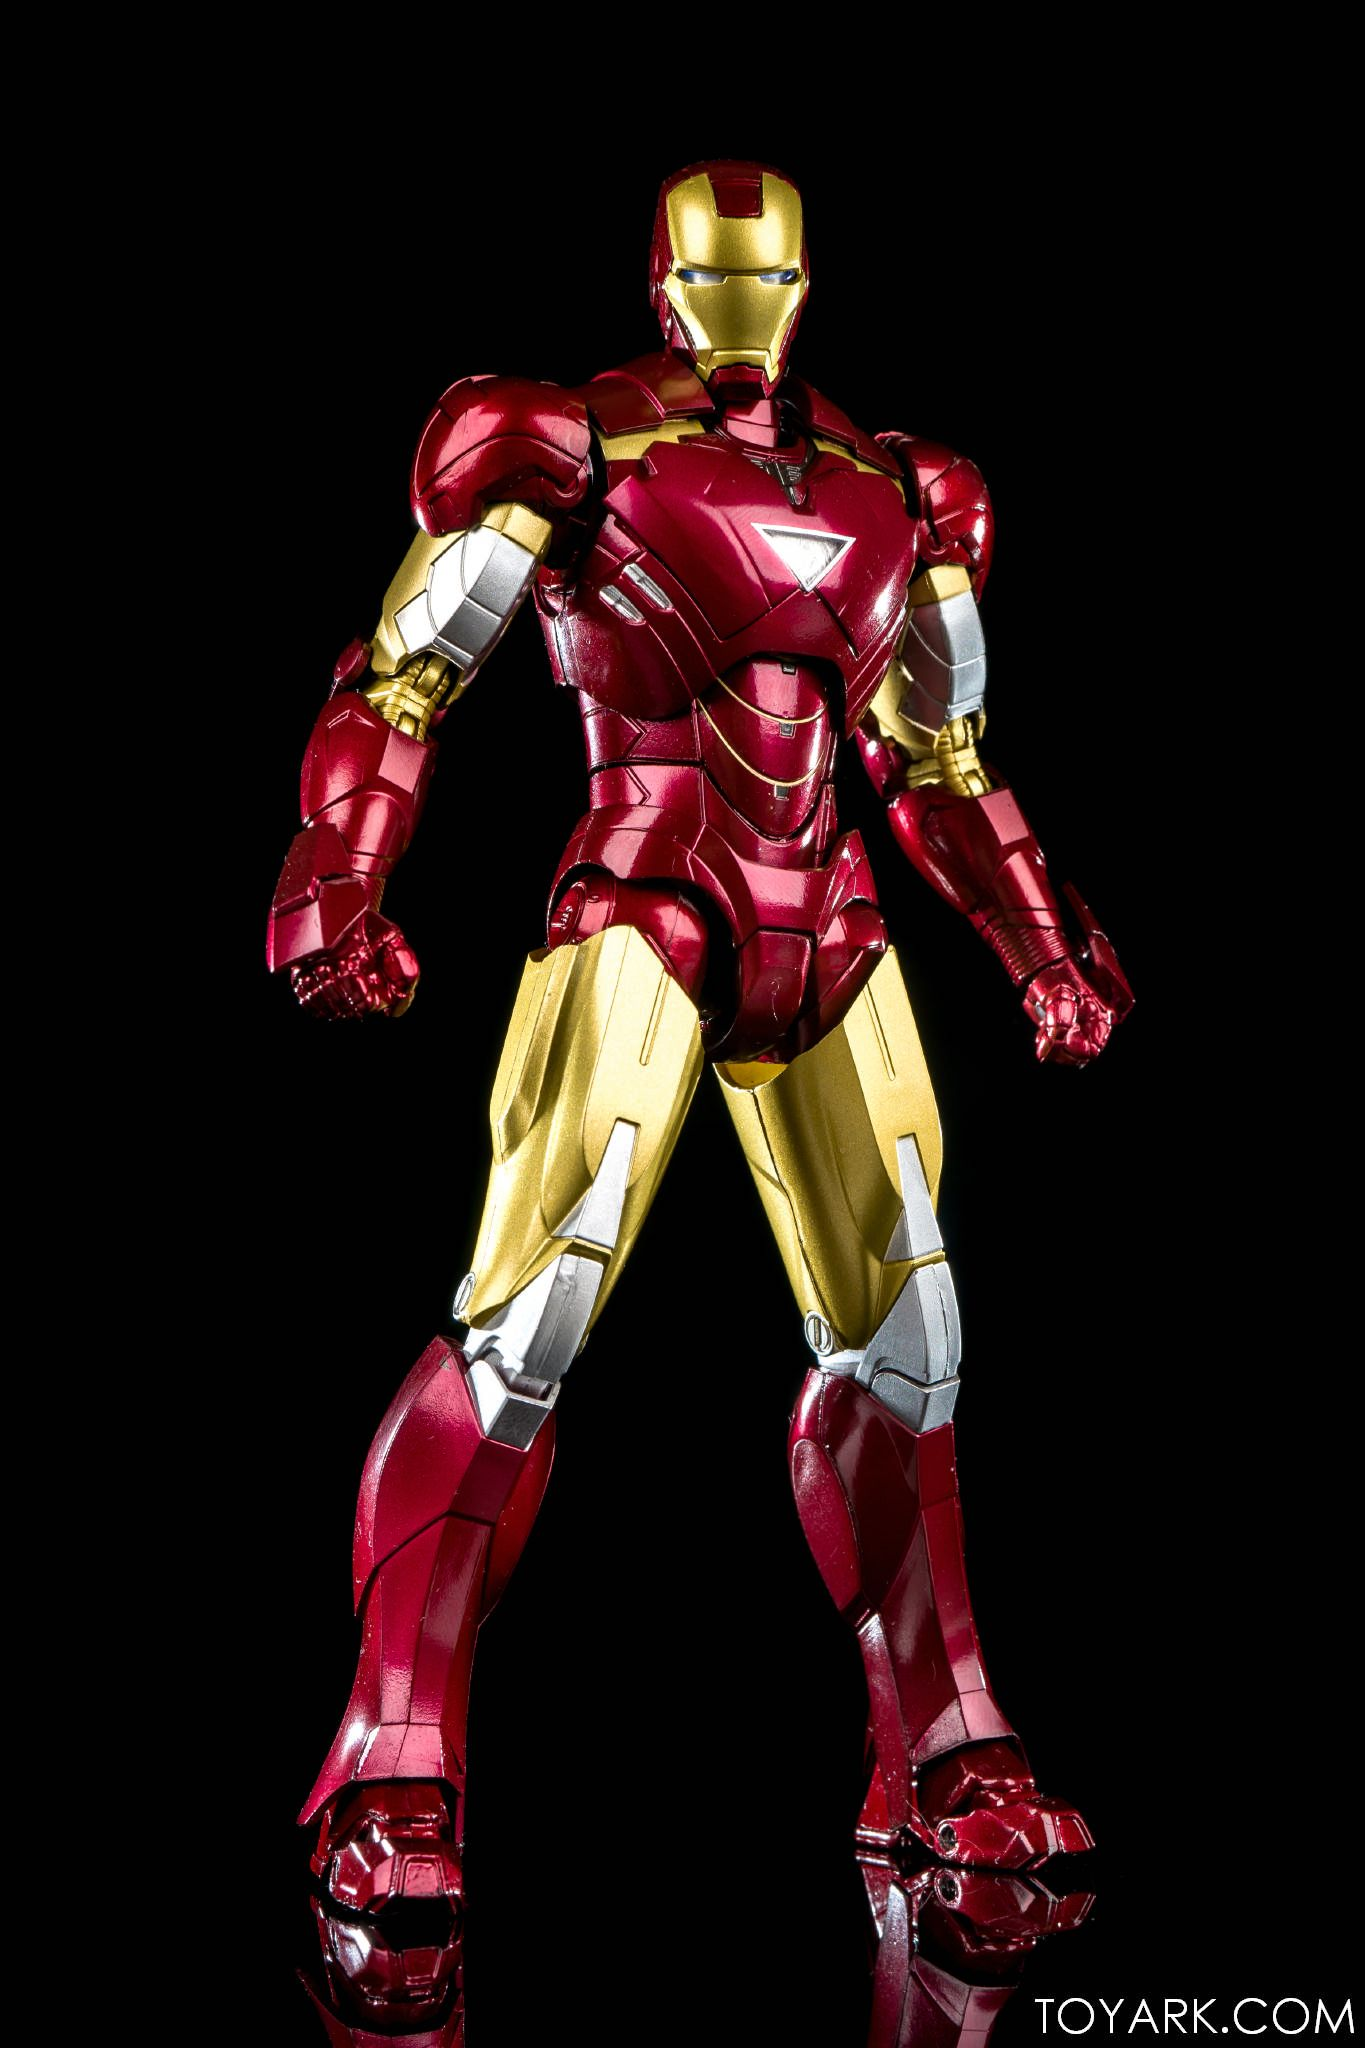 Bandai S.H.Figuarts Iron Man Mark 6 Japan version